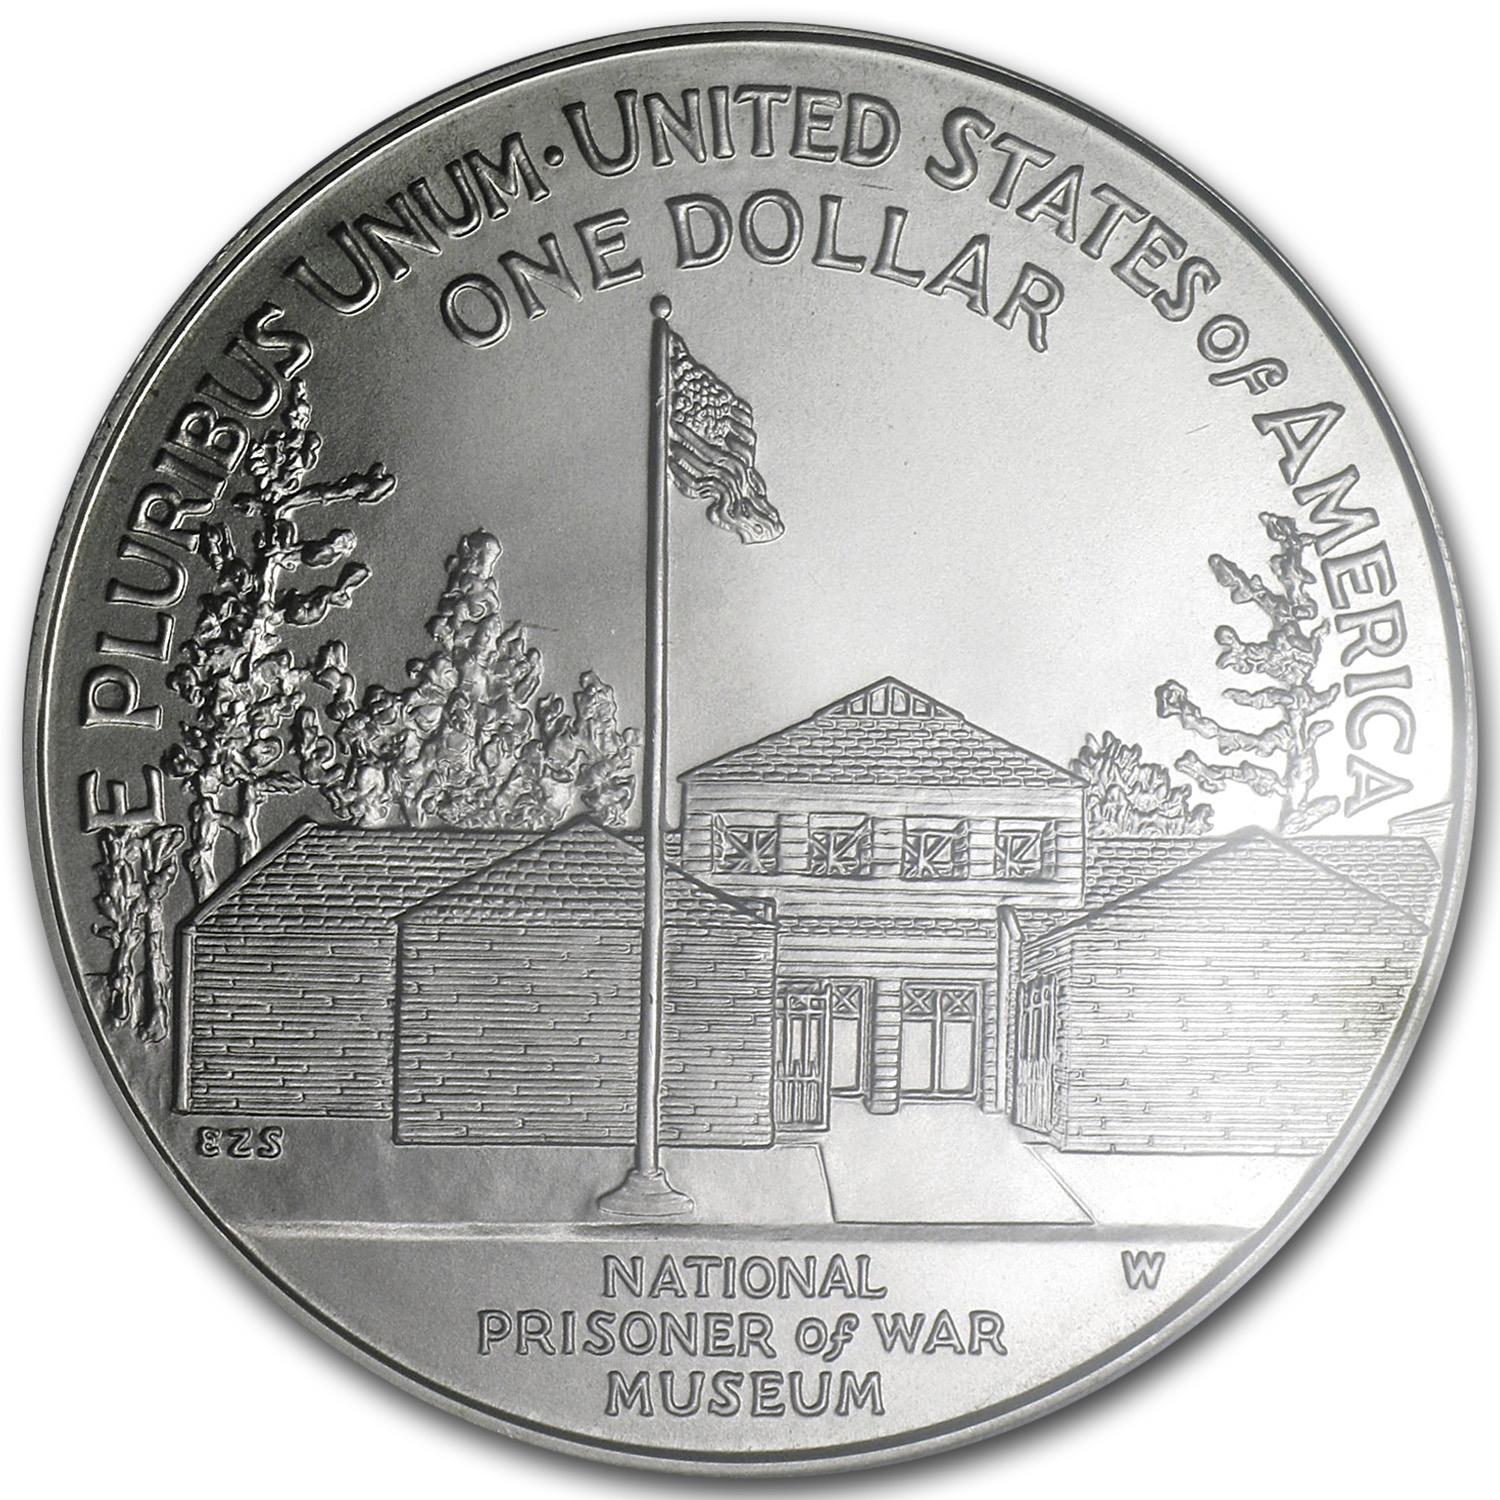 1994-W Prisoner of War $1 Silver Commemorative - MS-69 PCGS